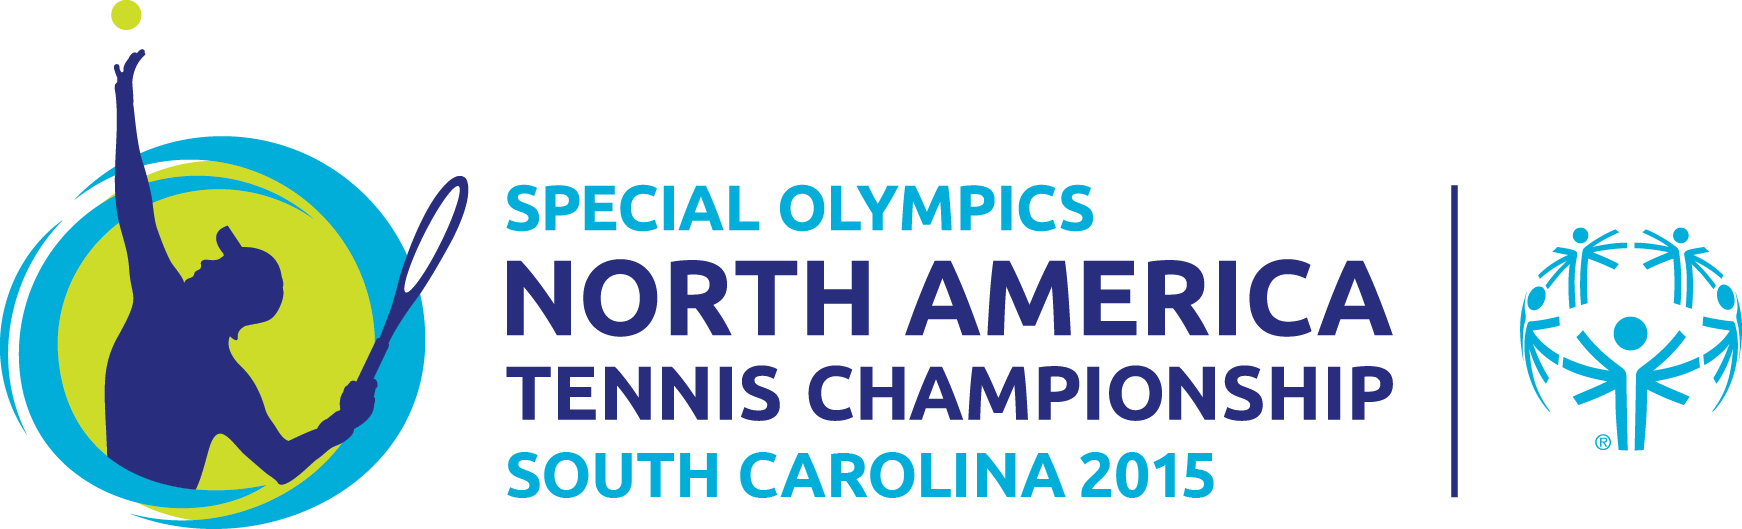 National-Tennis-logo